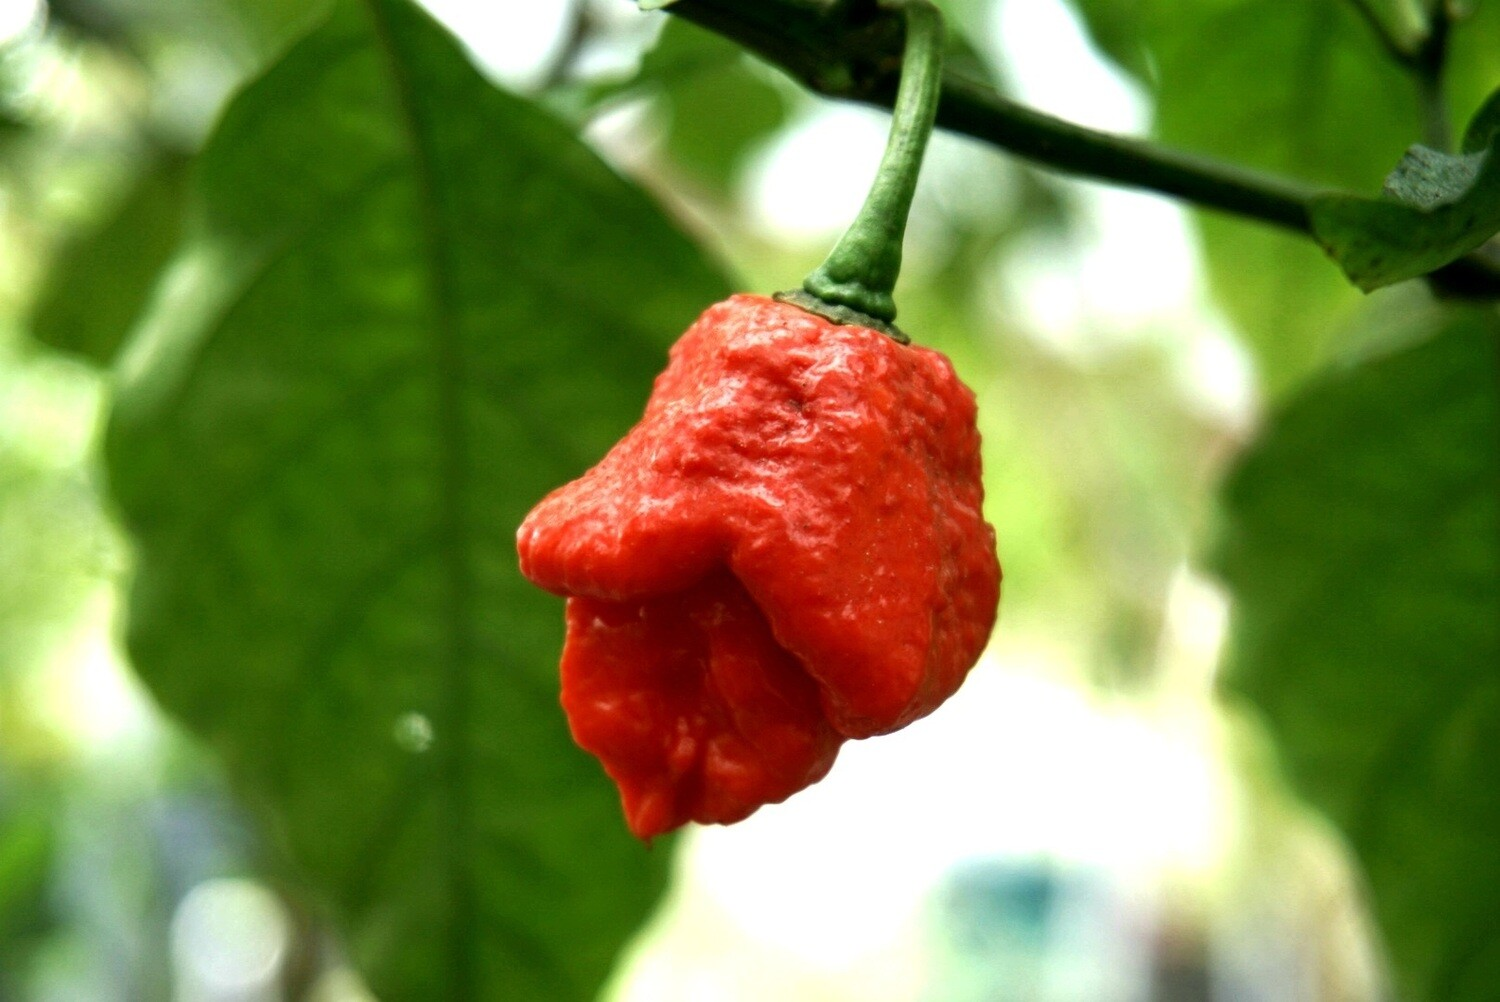 Apocalypse Scorpion Pepper Seeds-Capsicum chinense.